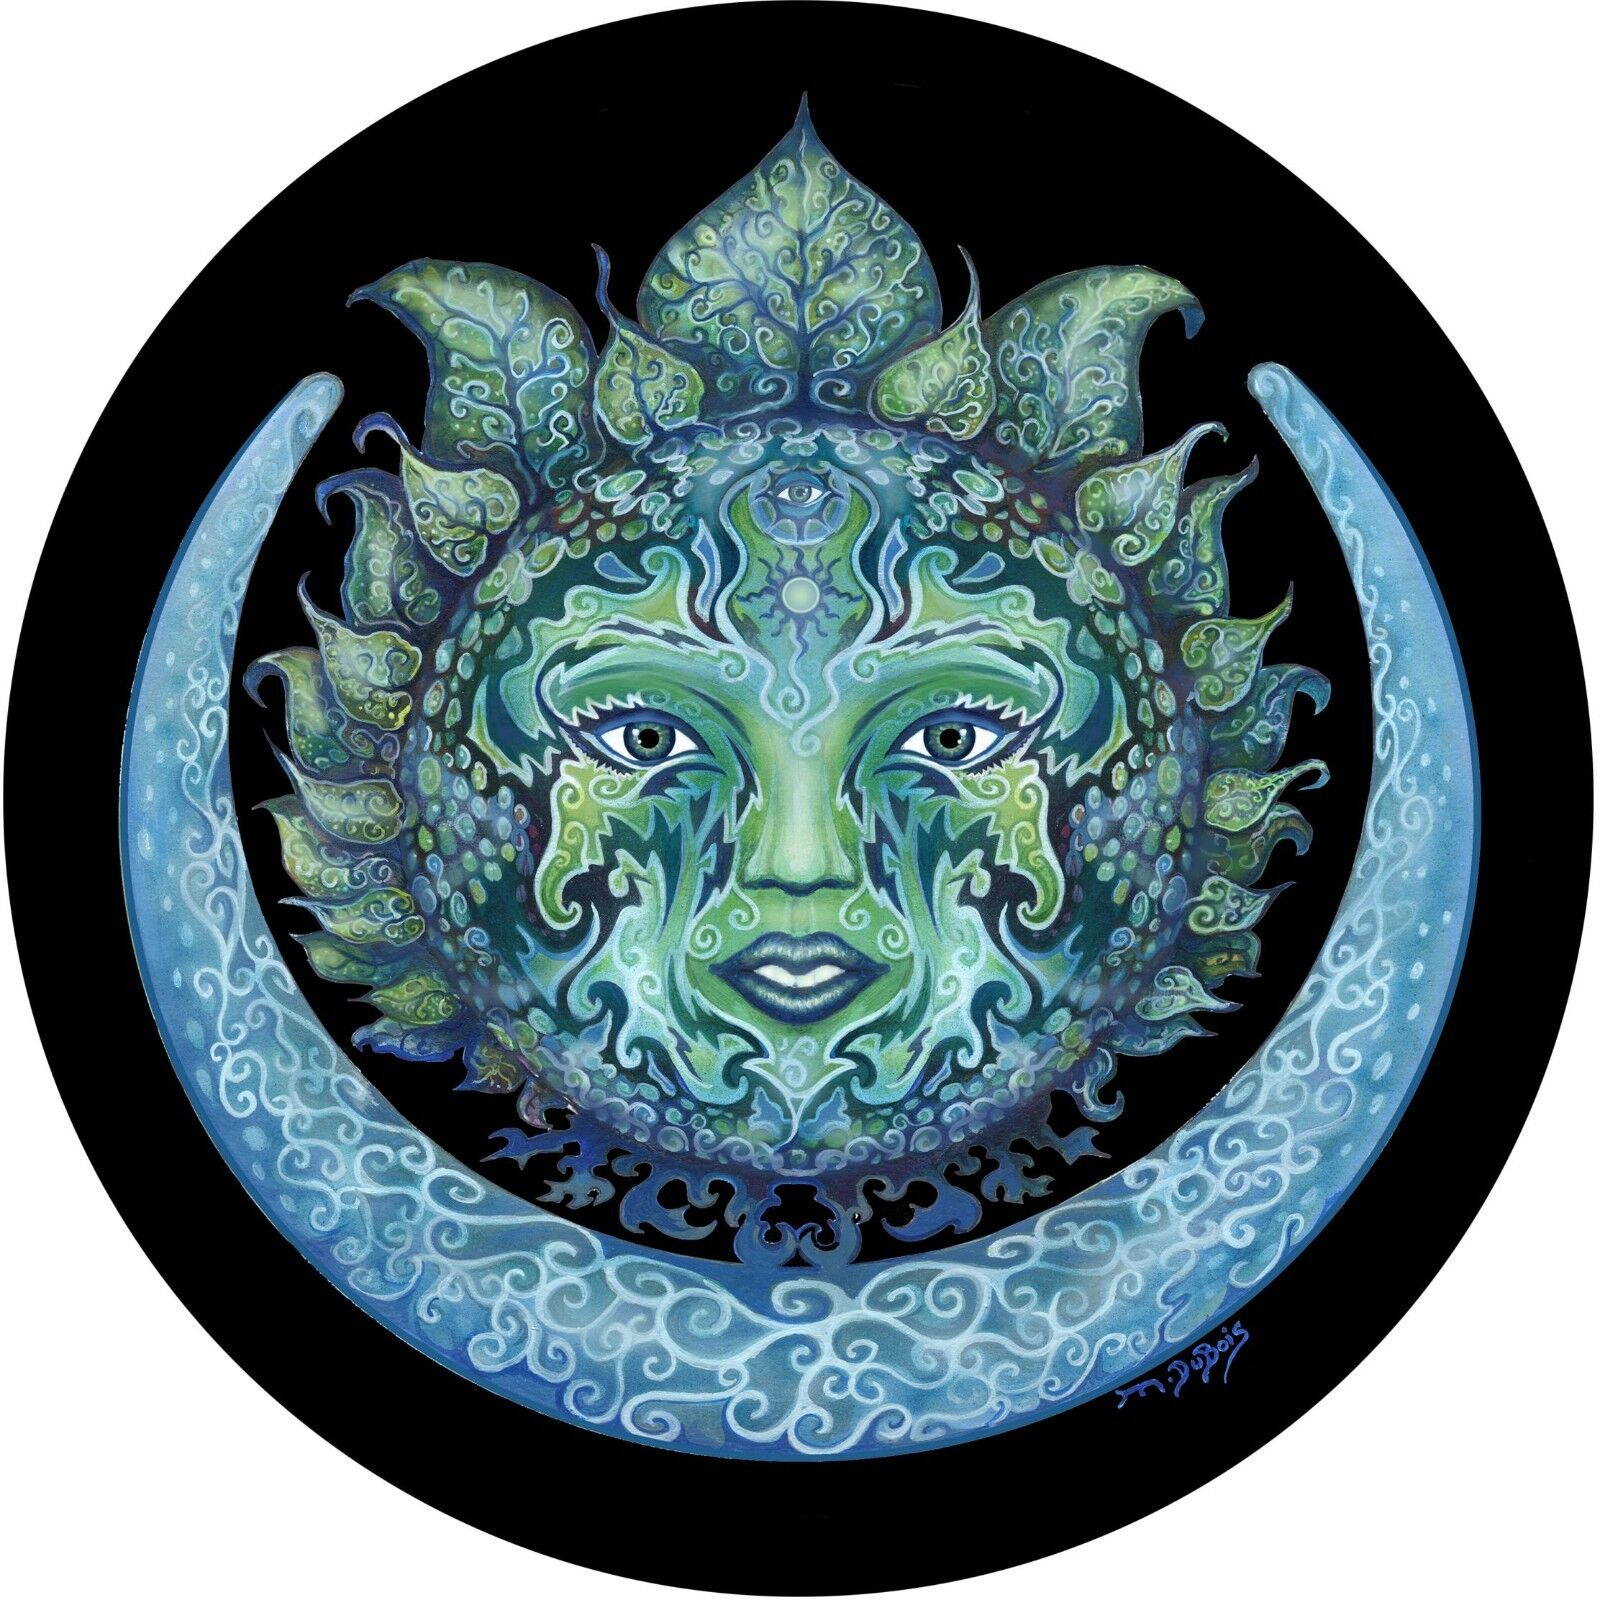 Green Woman Spare  Tire Cover Wheel Cover Jeep RV Camper etc(all sizes available)  buy 100% authentic quality